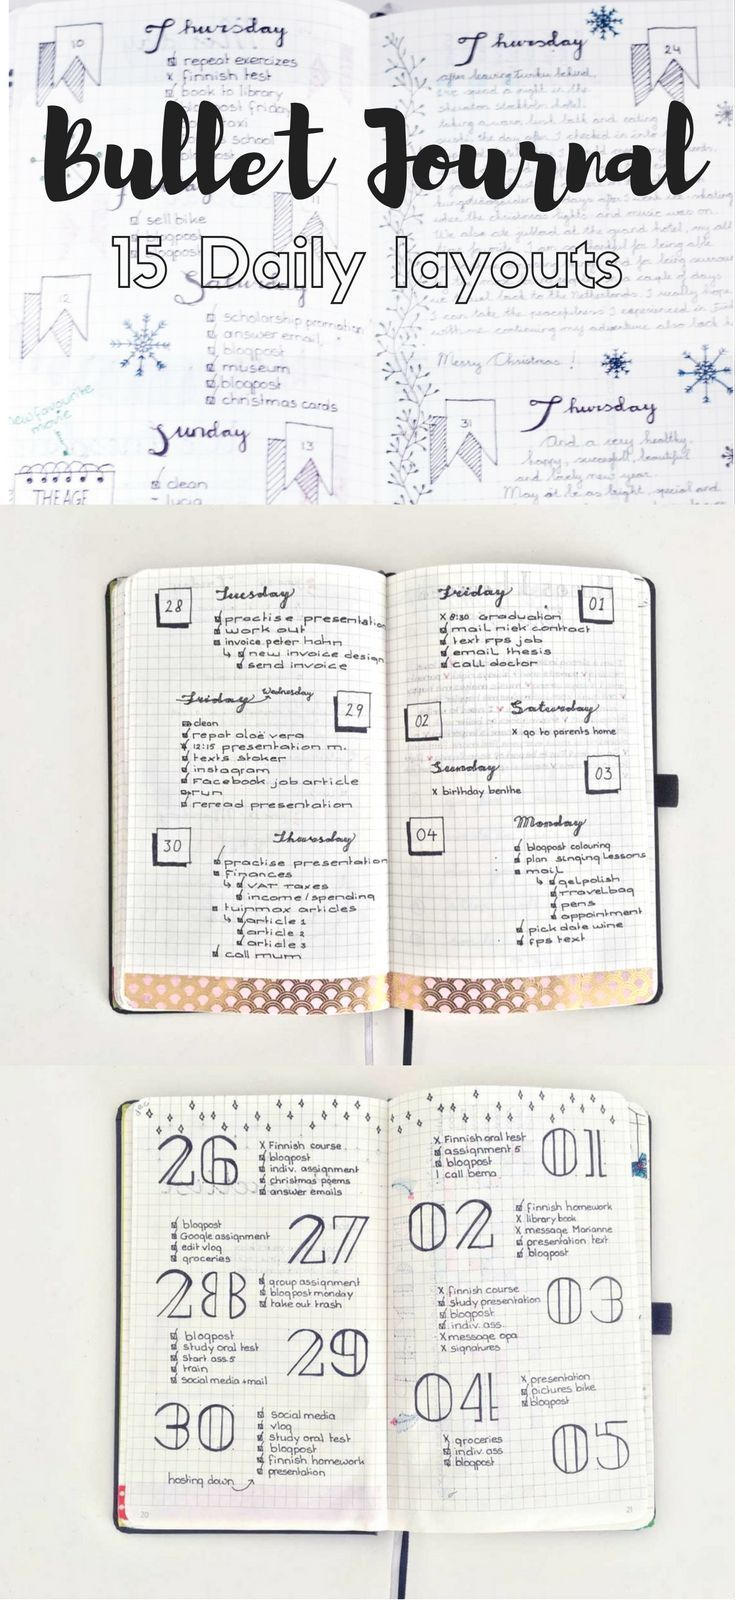 15 diffferent daily layouts for the bullet journal bullet journal junkies pinterest. Black Bedroom Furniture Sets. Home Design Ideas